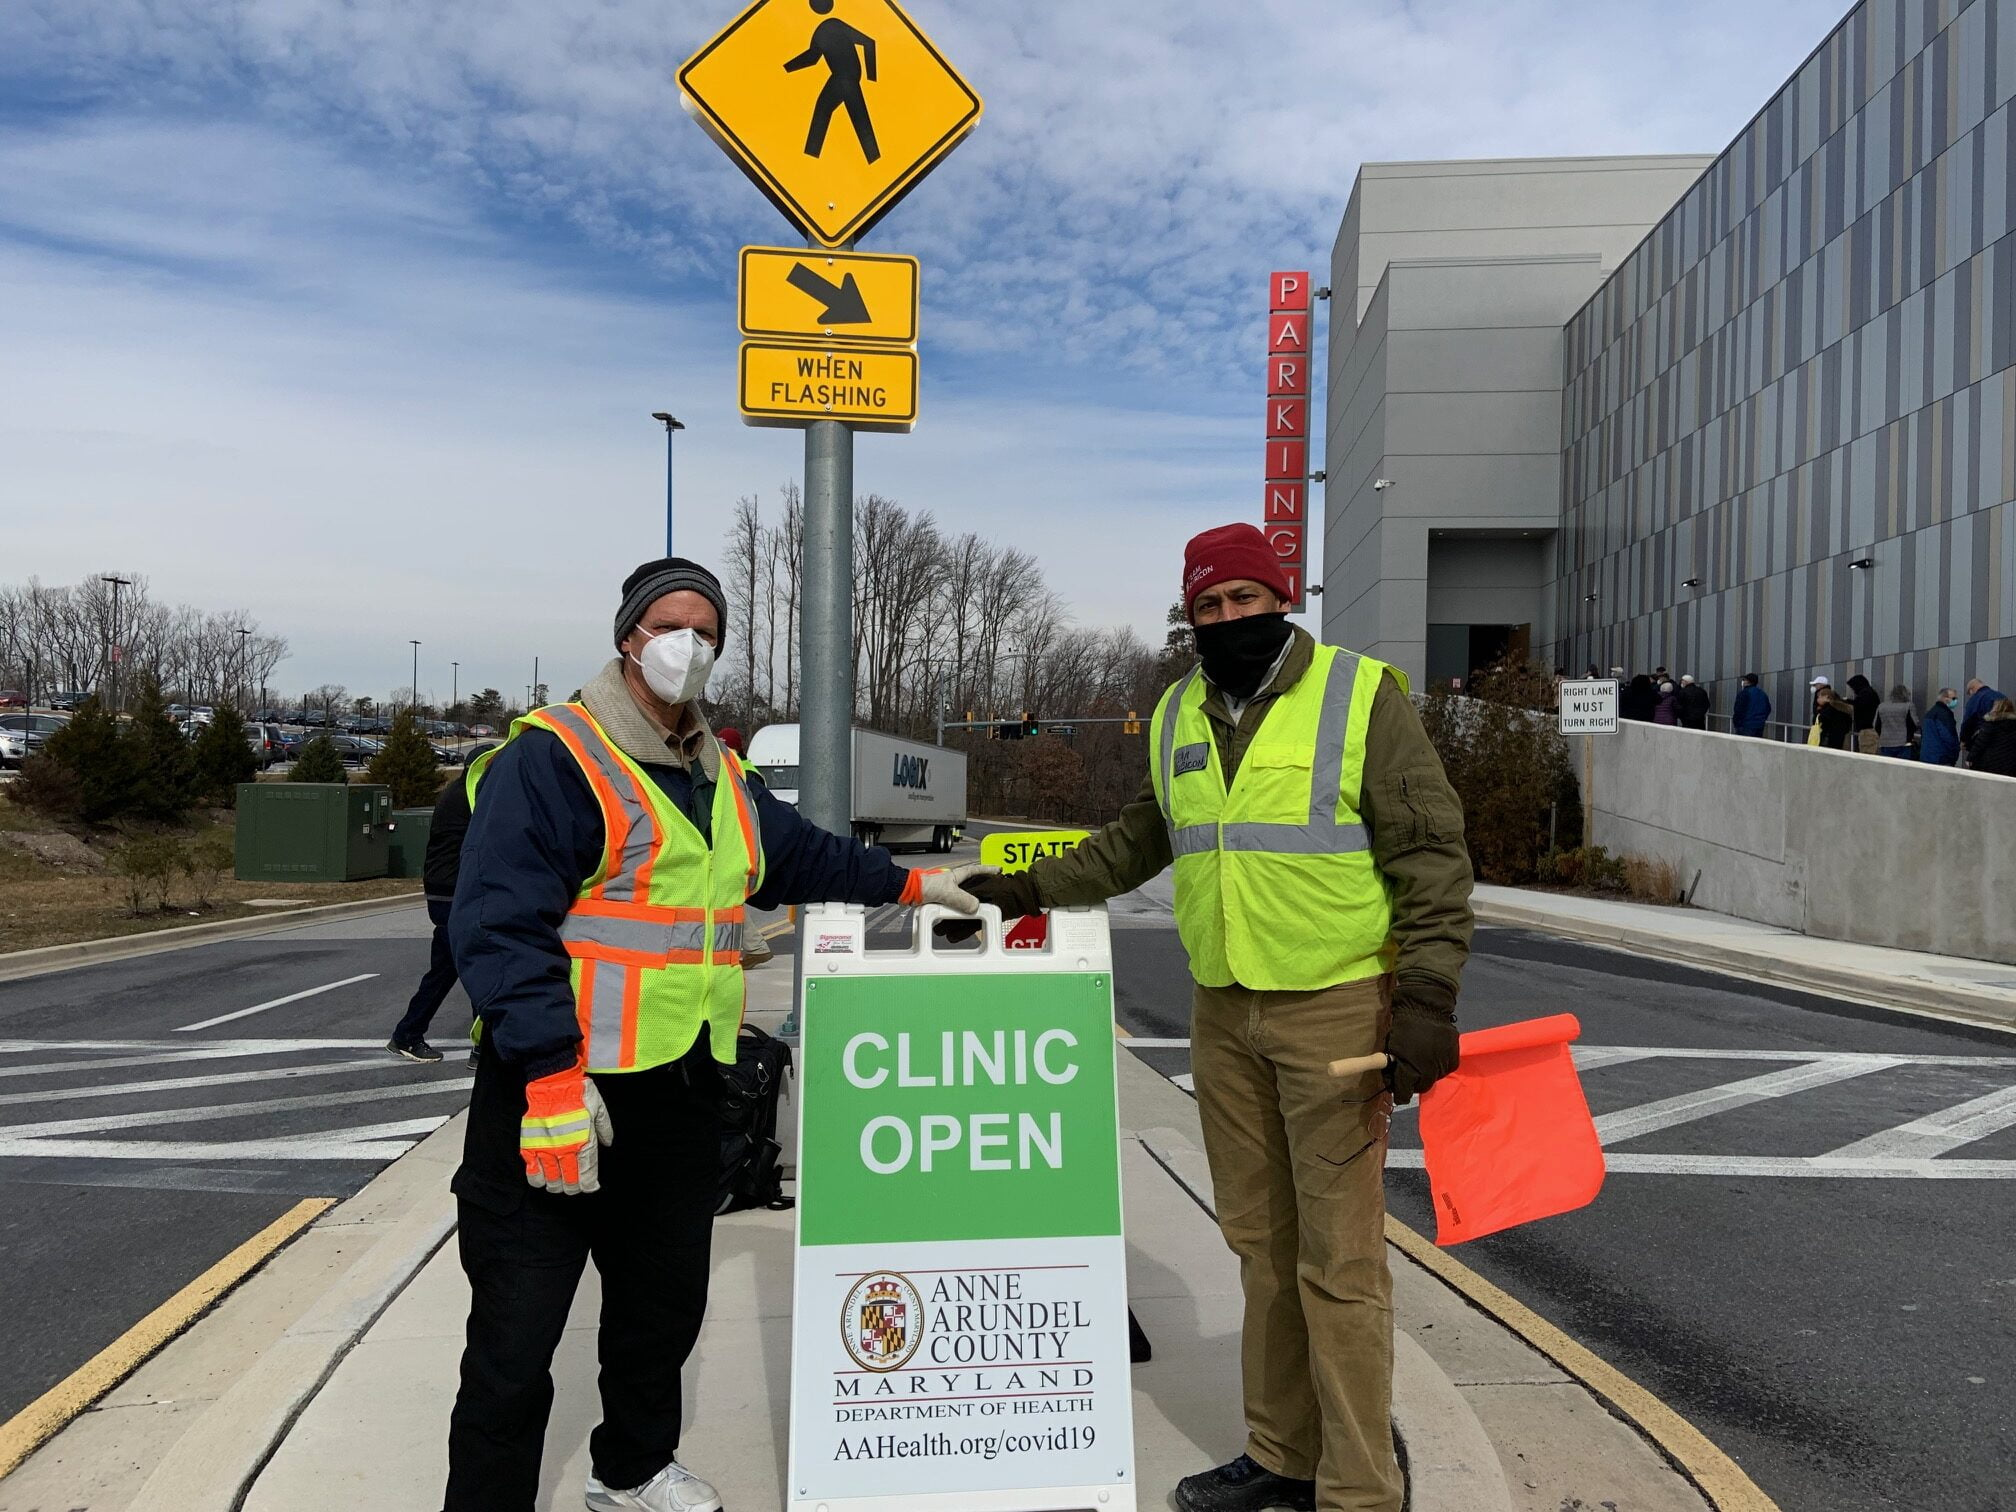 MDVOAD members help with traffic control,